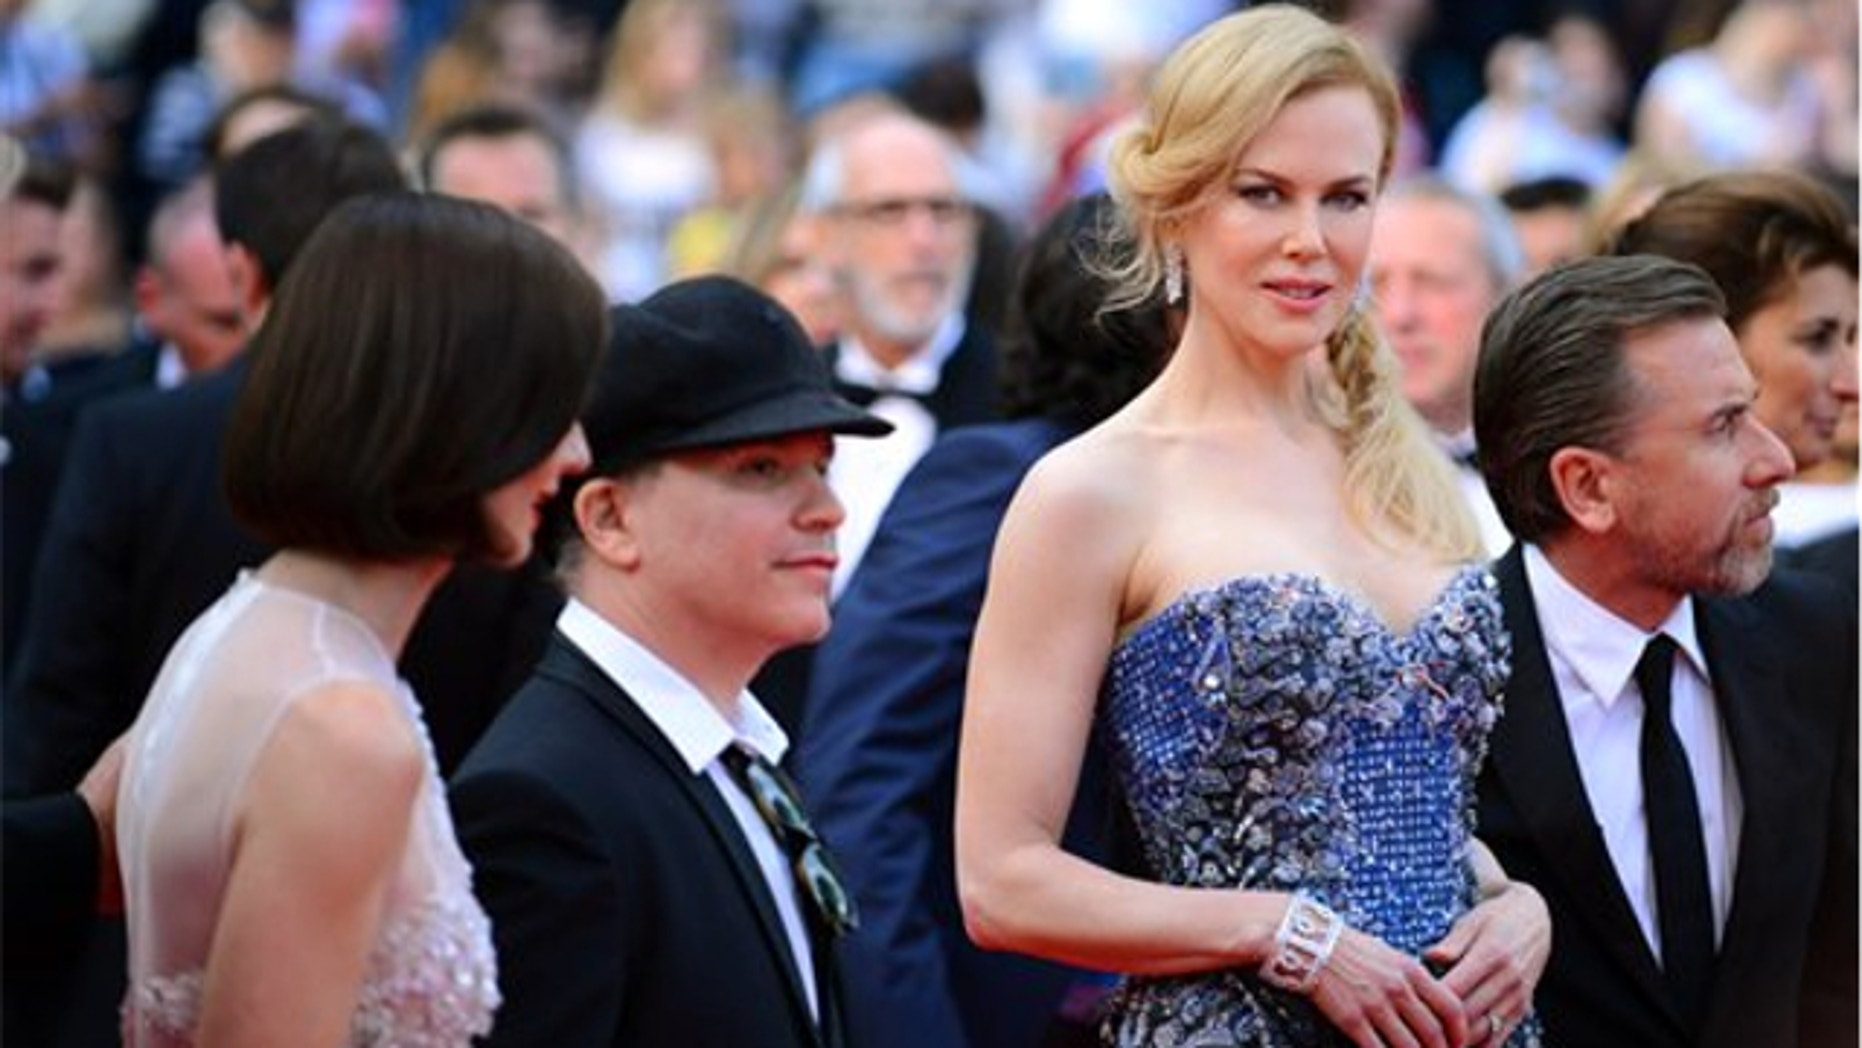 May 14, 2014: From left, actress Paz Vega, director Olivier Dahan, actors Nicole Kidman and Tim Roth pose on the red carpet during the opening ceremony and the screening of Grace of Monaco at the 67th international film festival, Cannes, southern France.